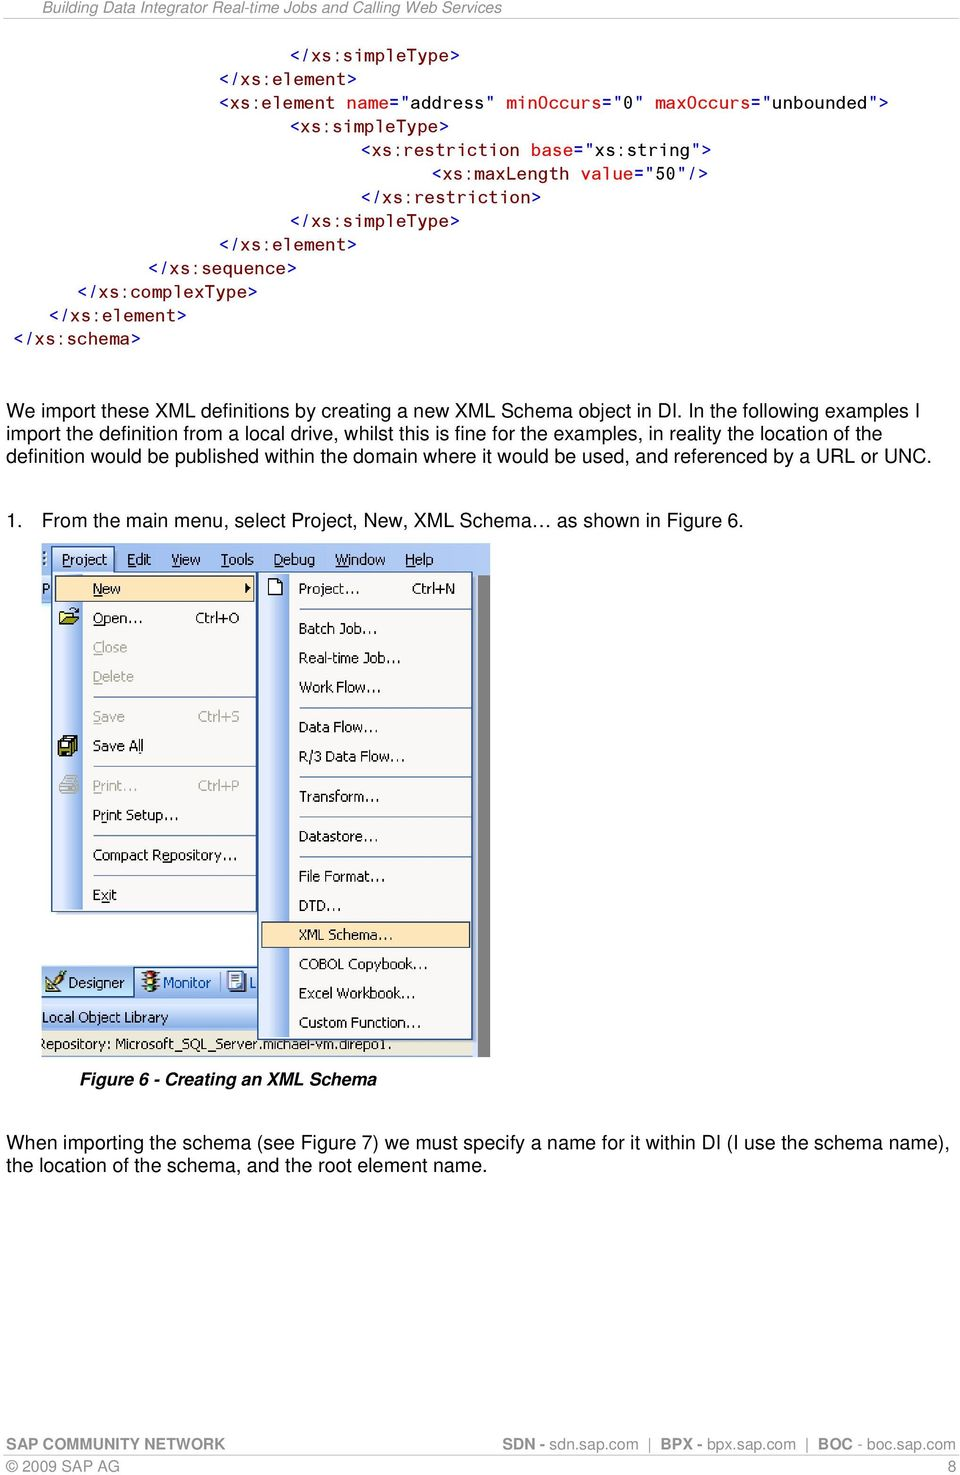 Building Data Integrator Real-time Jobs and Calling Web Services - PDF